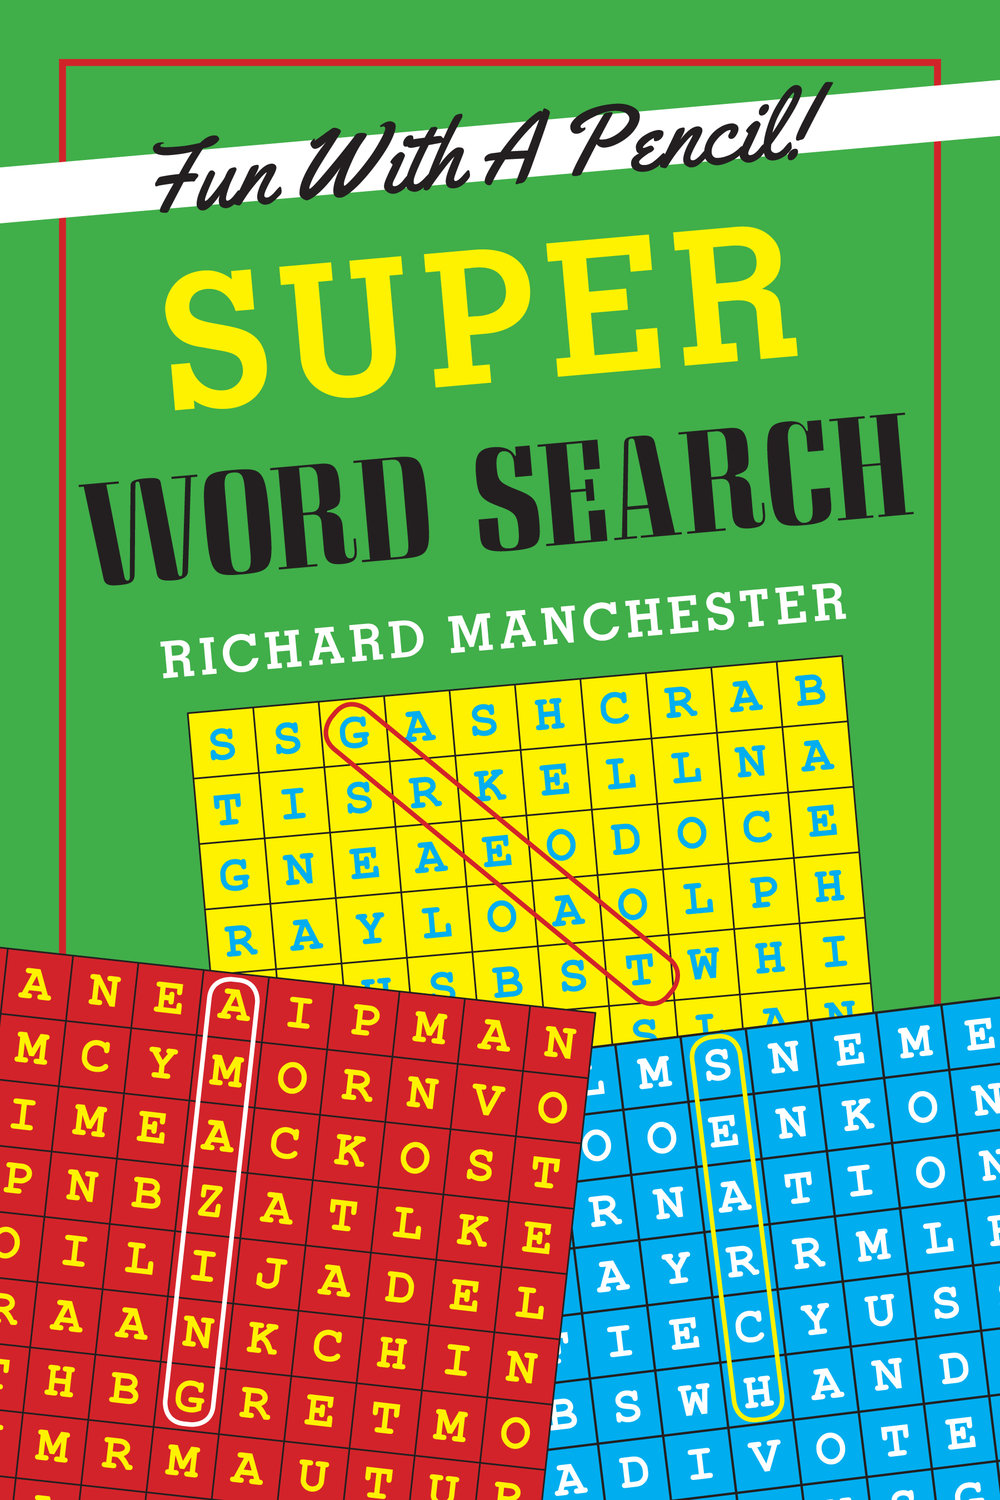 Bristol-FunWithAPencil-SuperWordSearch-6x9x300dpi-1.jpg